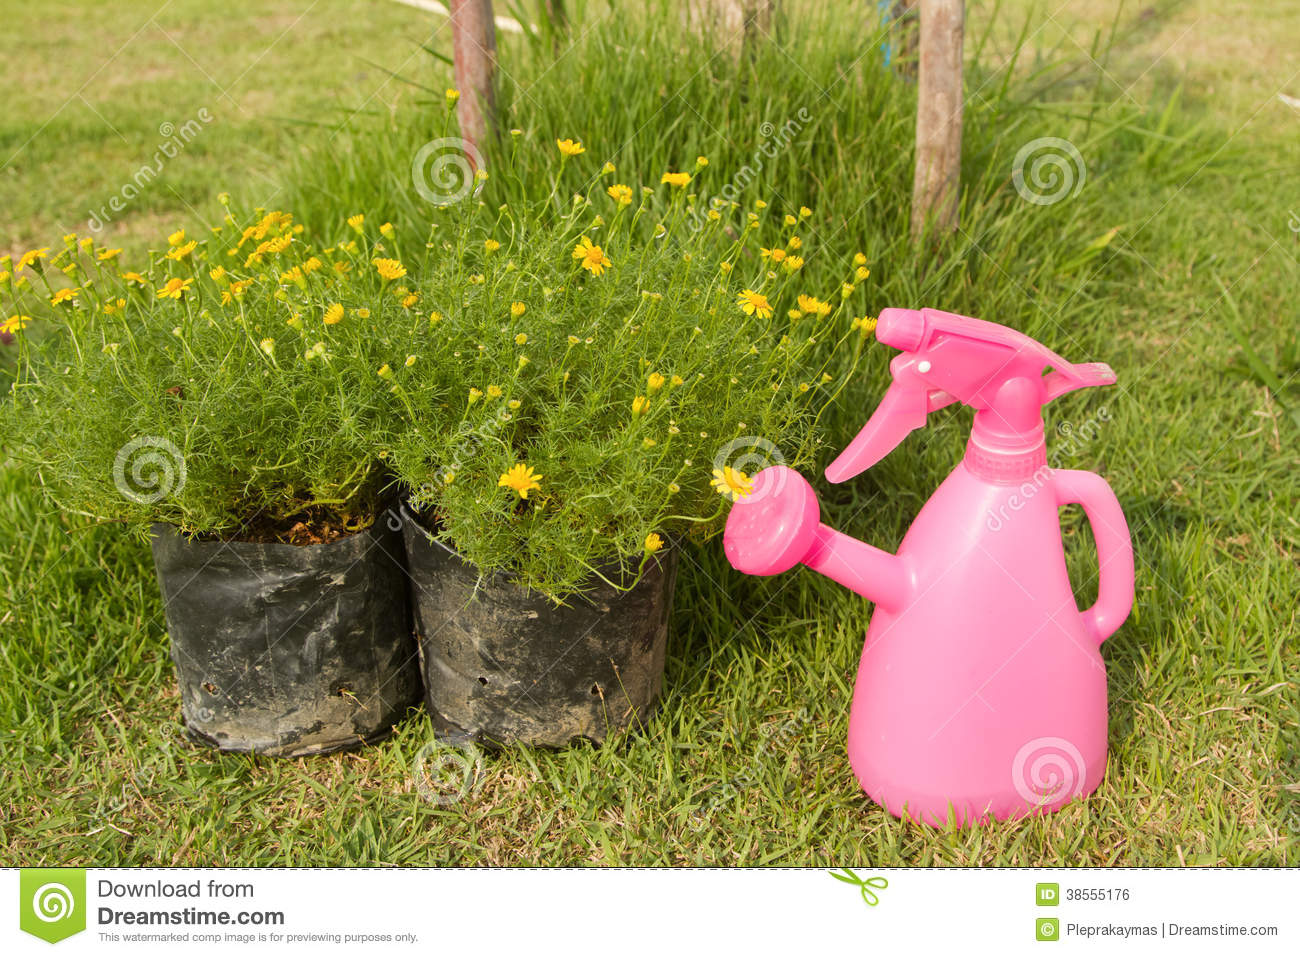 Watering can and plant in flower bag